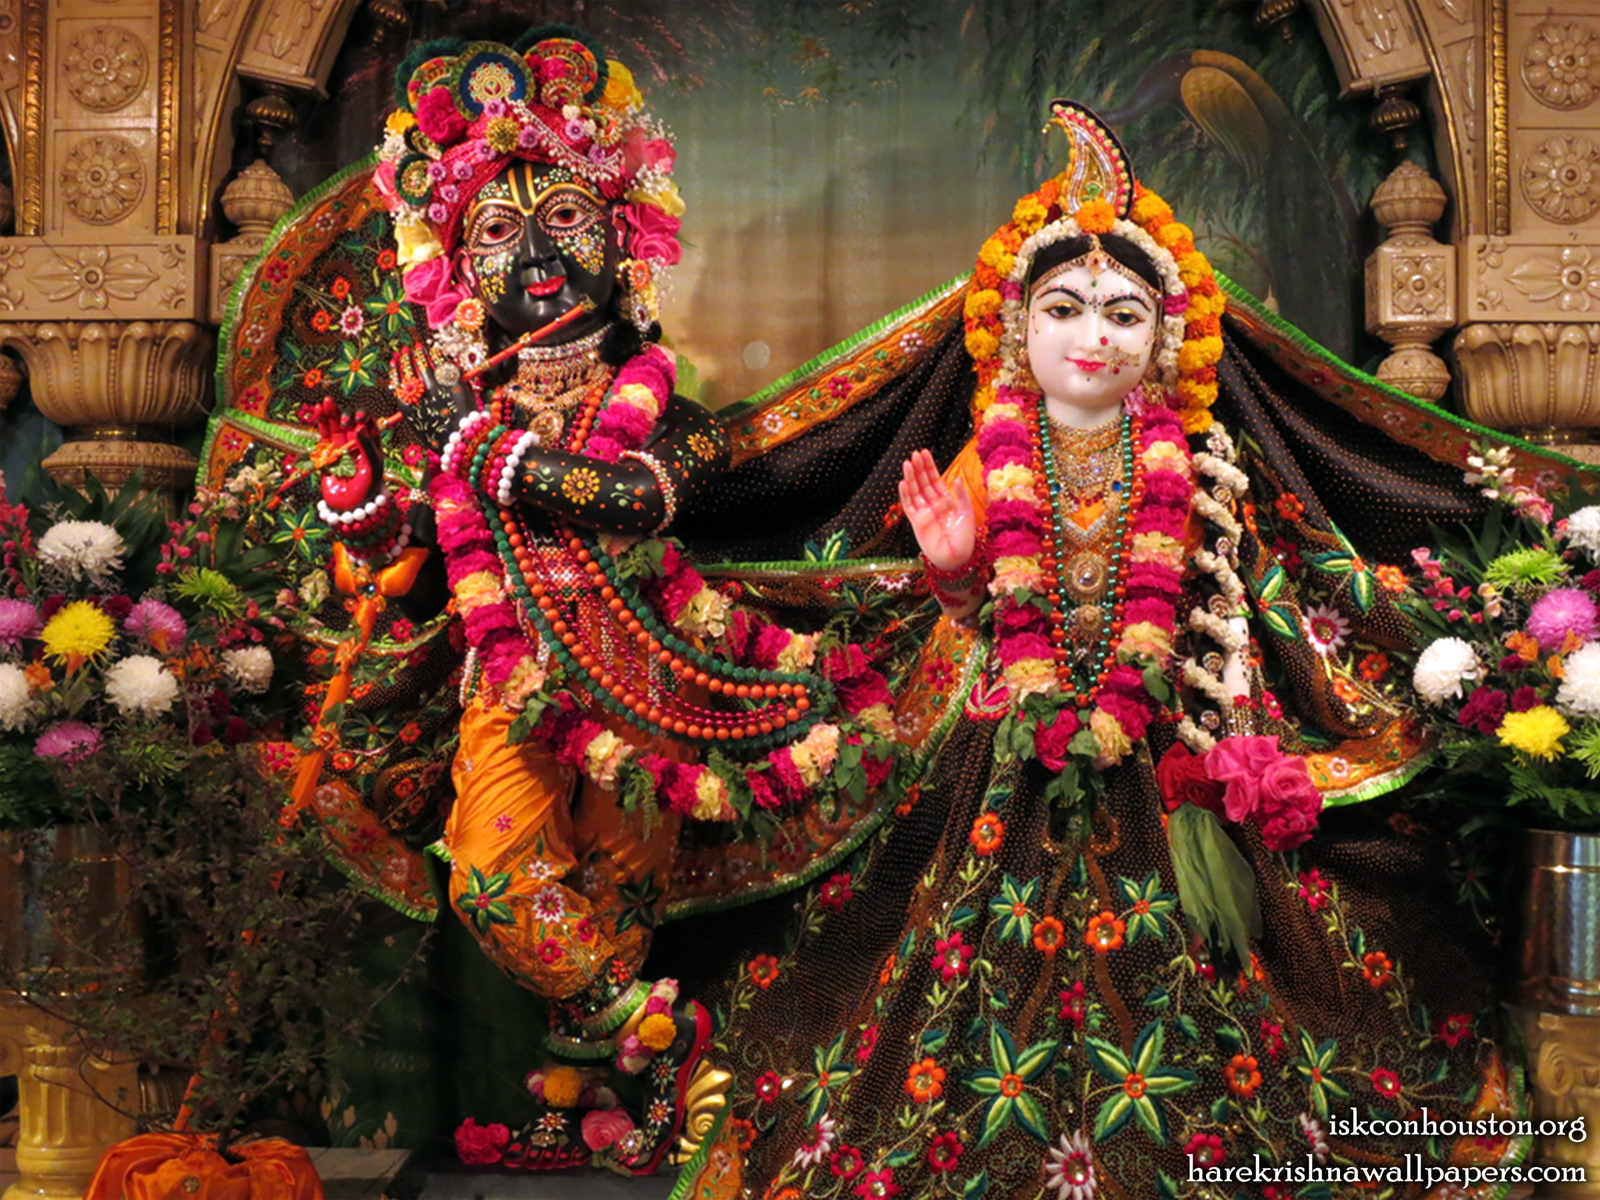 Sri Sri Radha Nilamadhava Wallpaper (007) Size1600x1200 Download